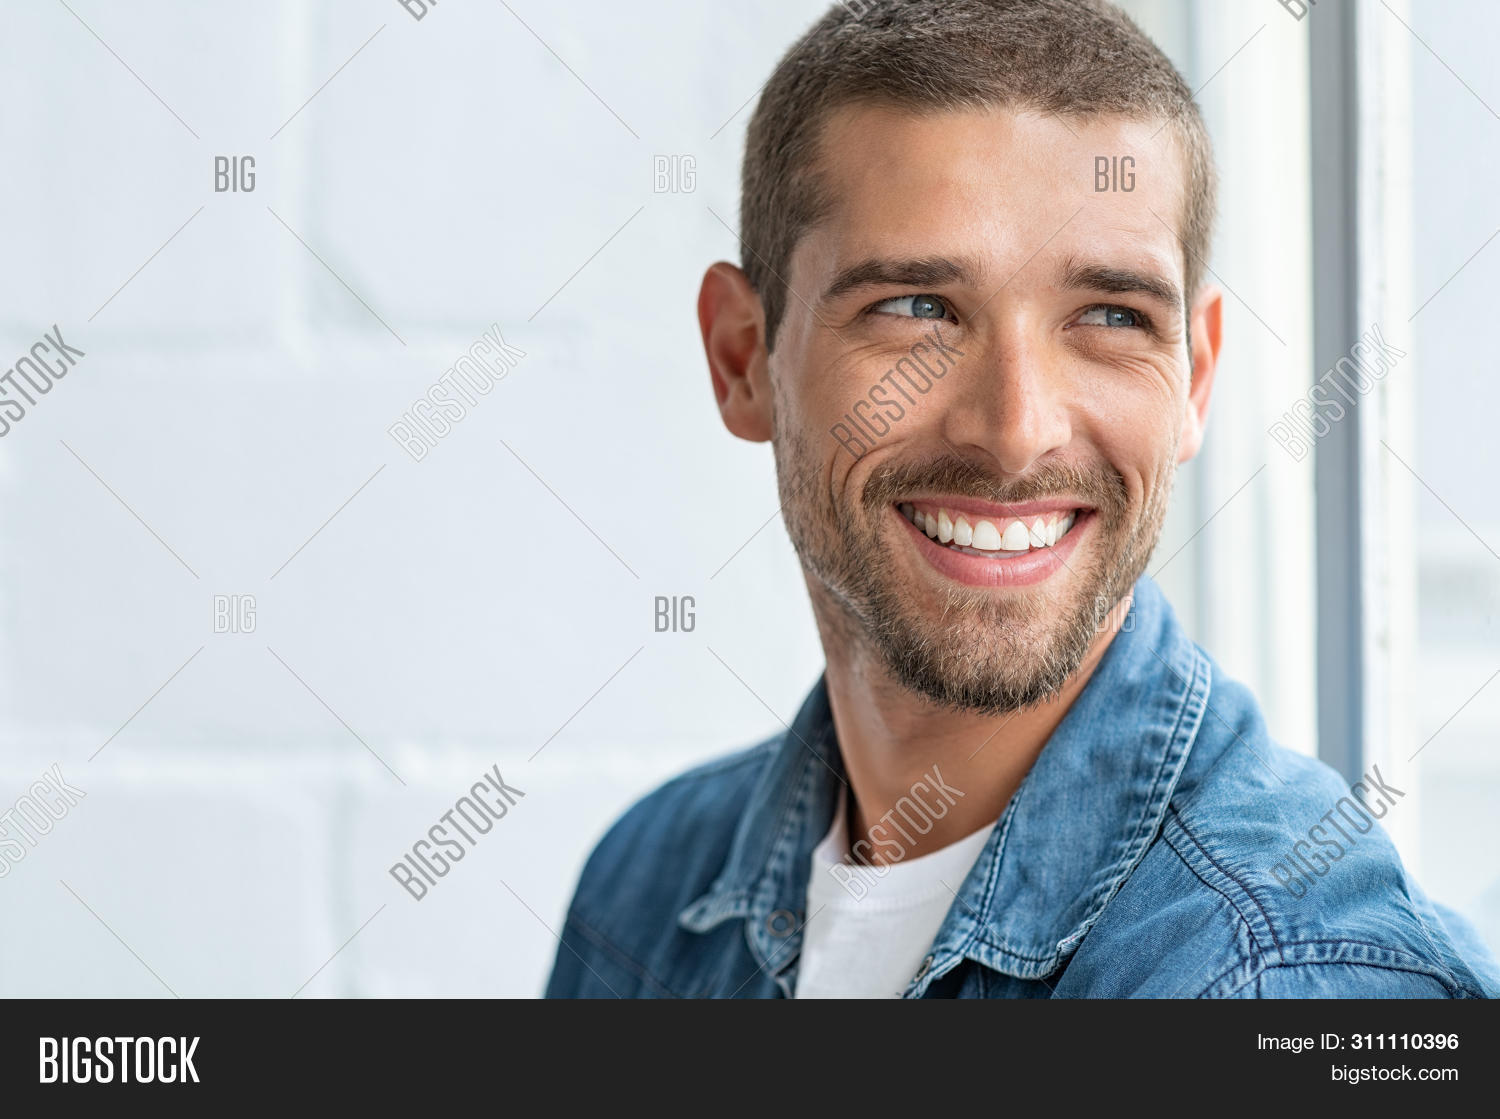 attractive,businessman,casual,casual man,cheerful,confident,contemplating,cool,copy space,daydream,dental,determination,dream,face,forecasting,future,guy,handsome,handsome man,happy,imagination,imagine,lifestyle,looking,looking away,looking trough window,man,modern,people,planning,portrait,positive,proud,smile,student,stylish,success,successful,teeth,think,thoughtful,toothy,toothy smile,vision,white,window,work,young,young man